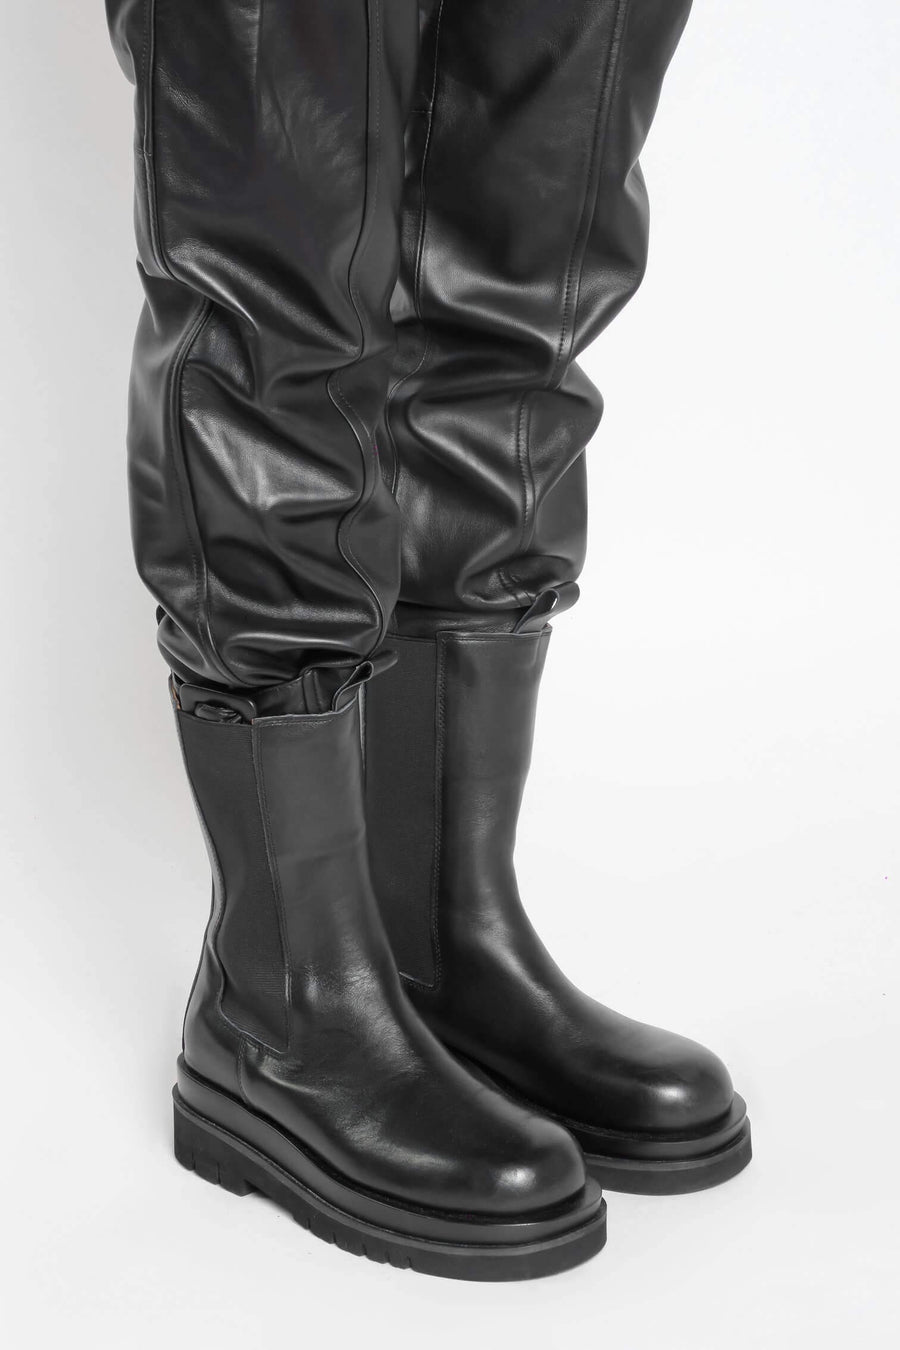 Ducie London Kendall Short Boot in Black from The New Trend